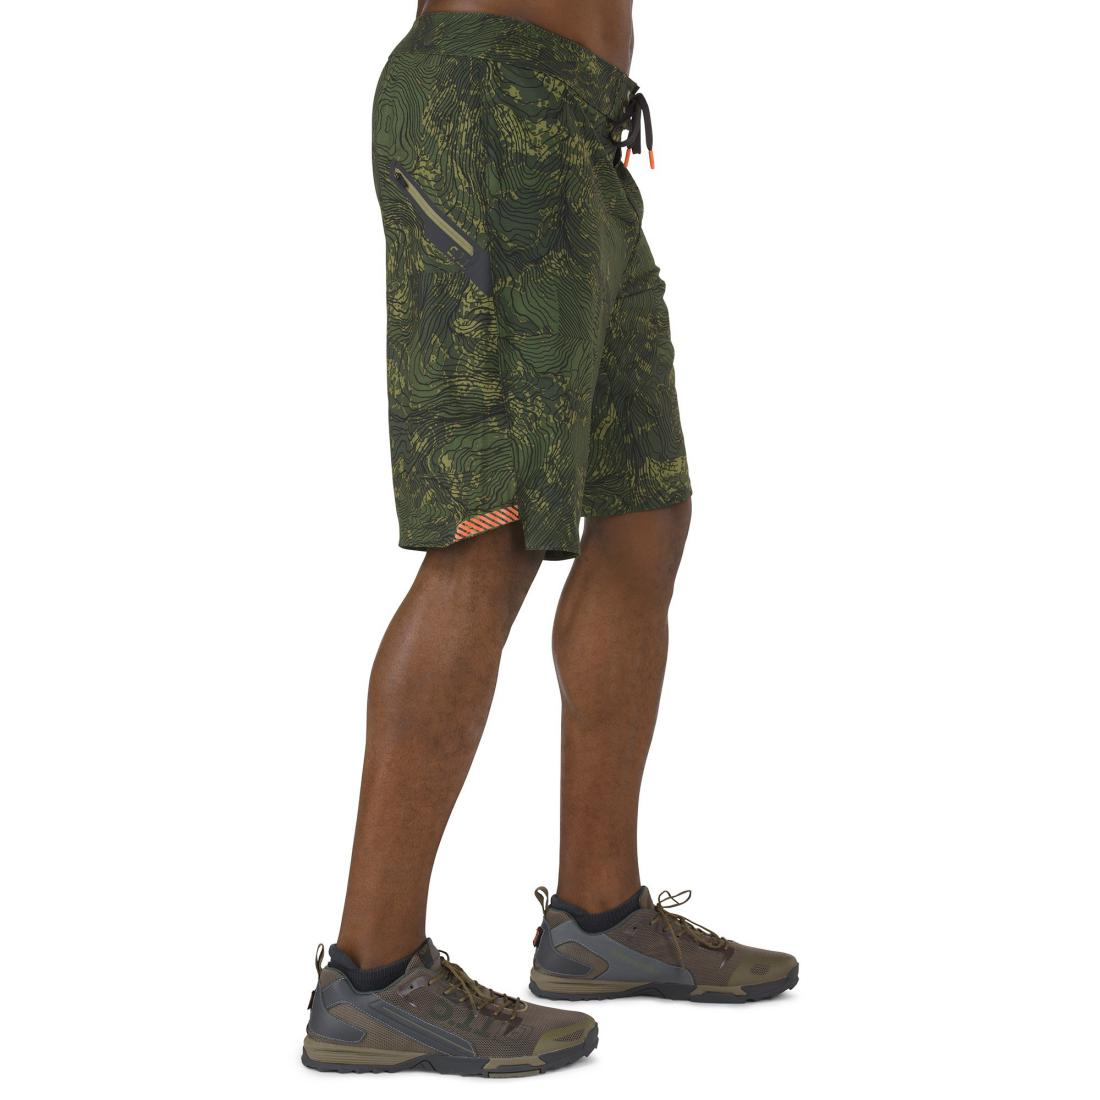 5.11 Tactical 73328 Men Recon Vandal Topo Shorts Fatigue - 28